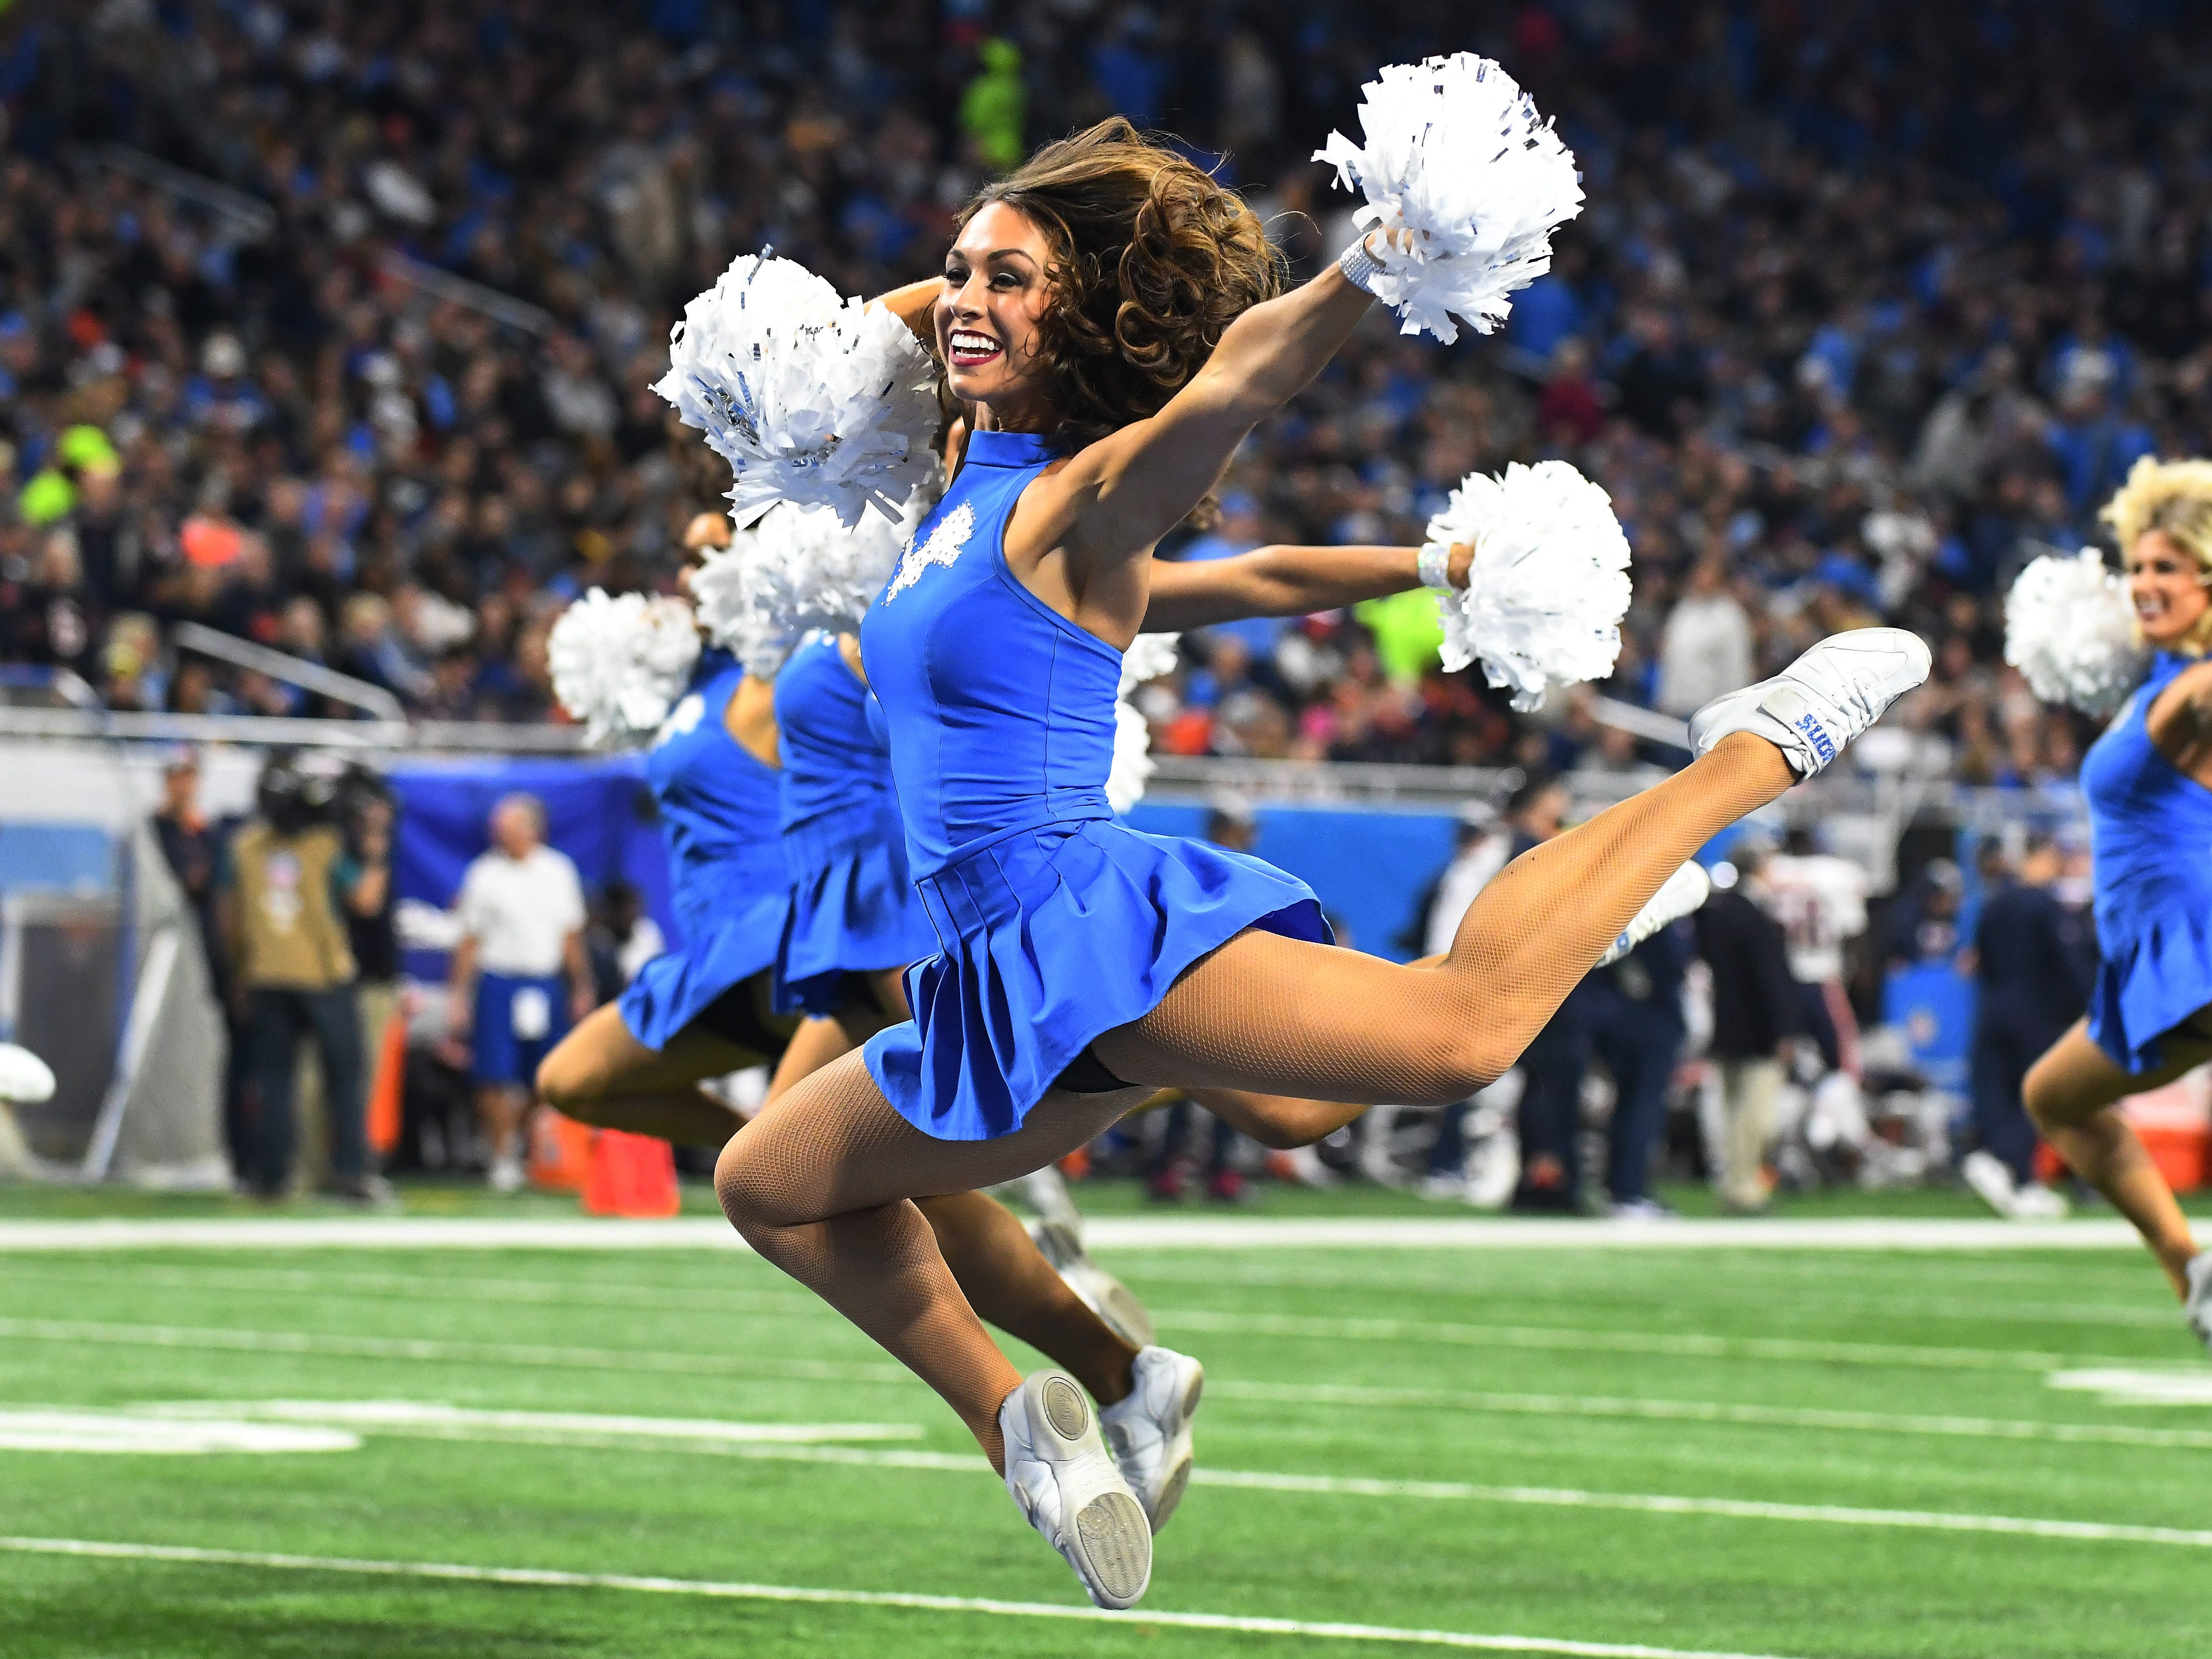 Detroit Lions Cheerleaders perform during a break in the action between quarters.